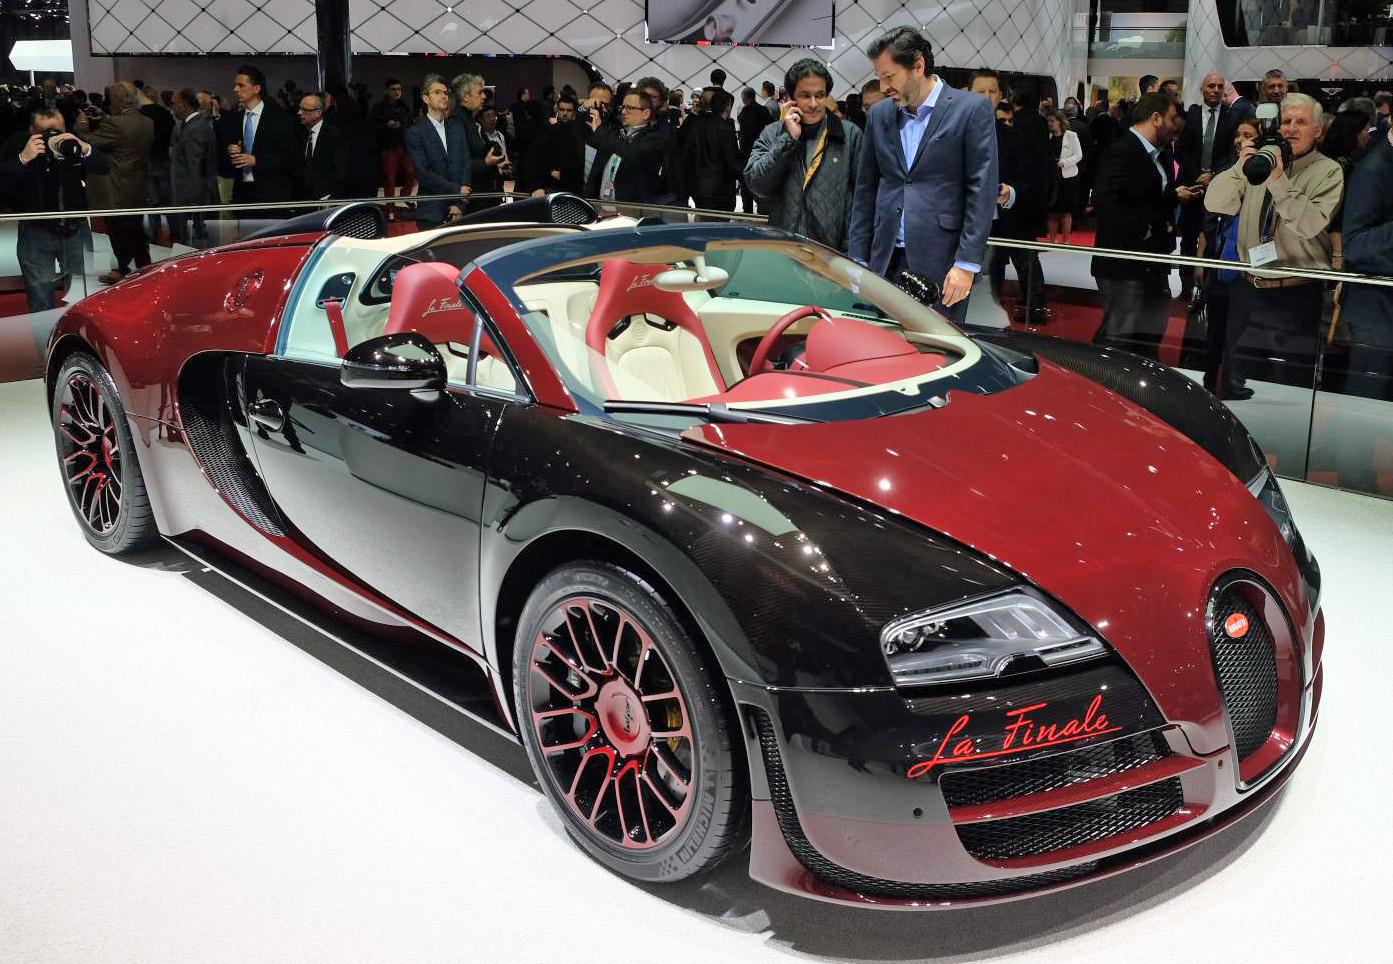 bugatti veyron 16 4 grand sport vitesse la finale the 450th and last veyr. Black Bedroom Furniture Sets. Home Design Ideas